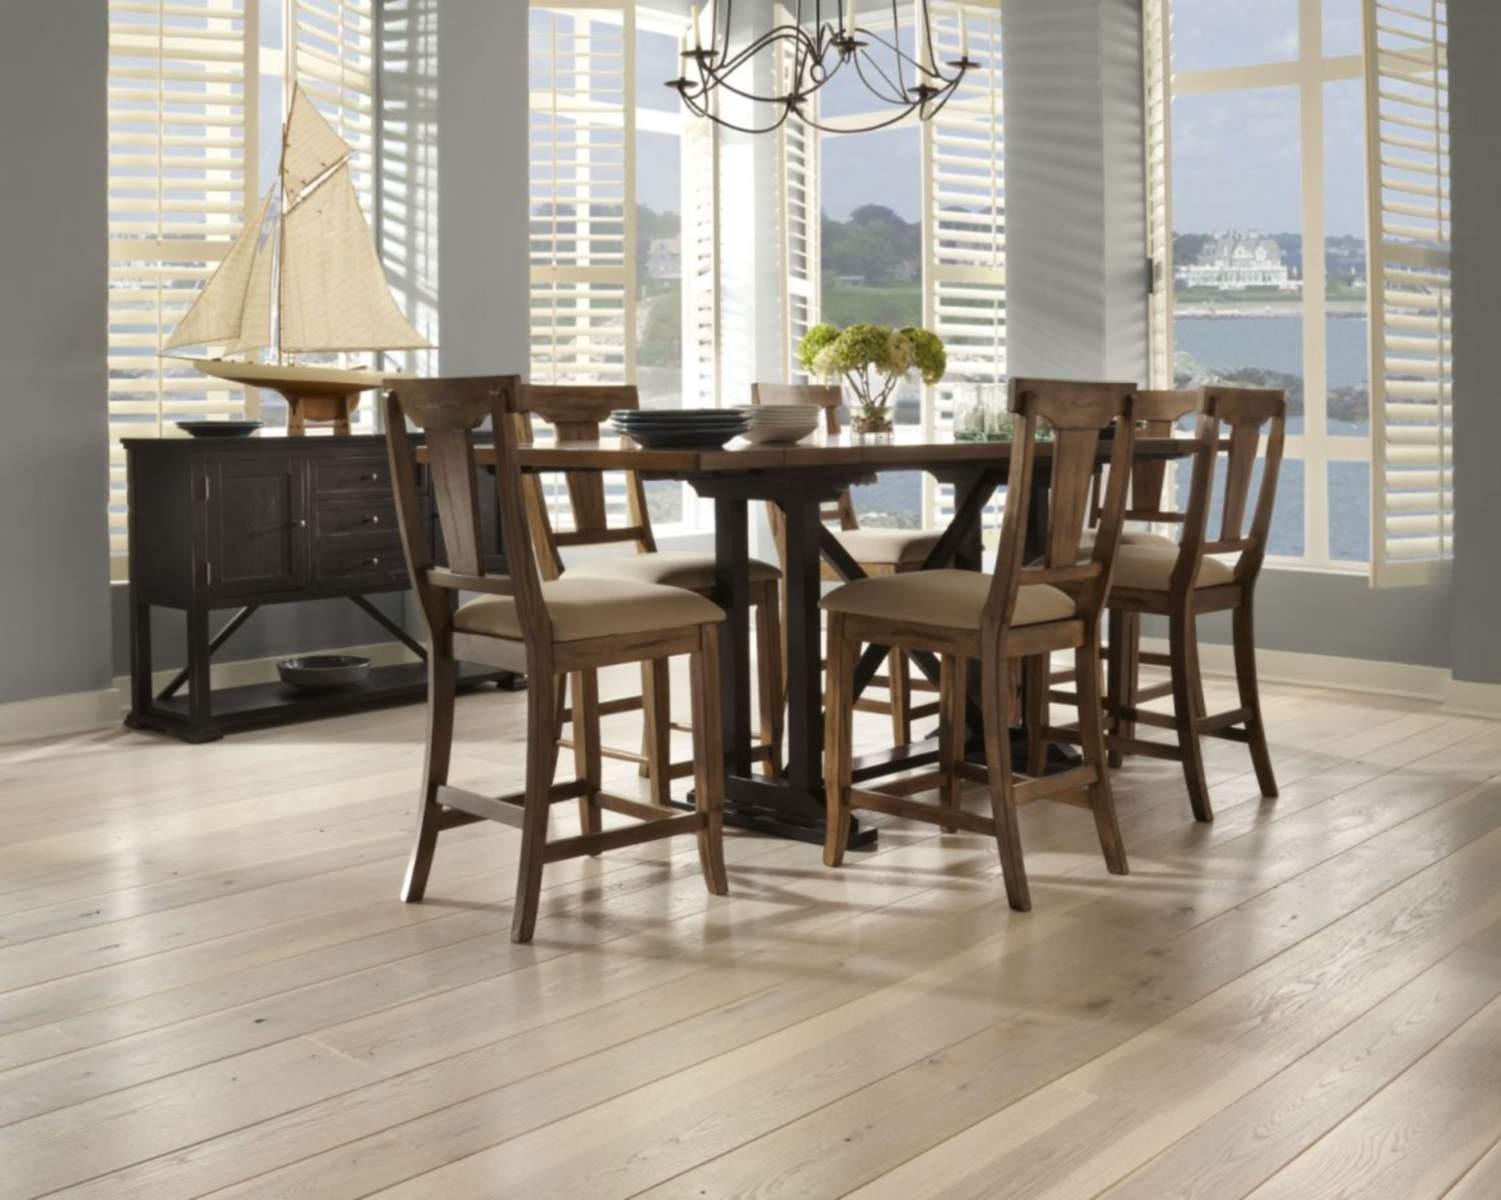 best engineered hardwood flooring canada of top 5 brands for solid hardwood flooring throughout a dining room with carlisle hickorys wide plank flooring